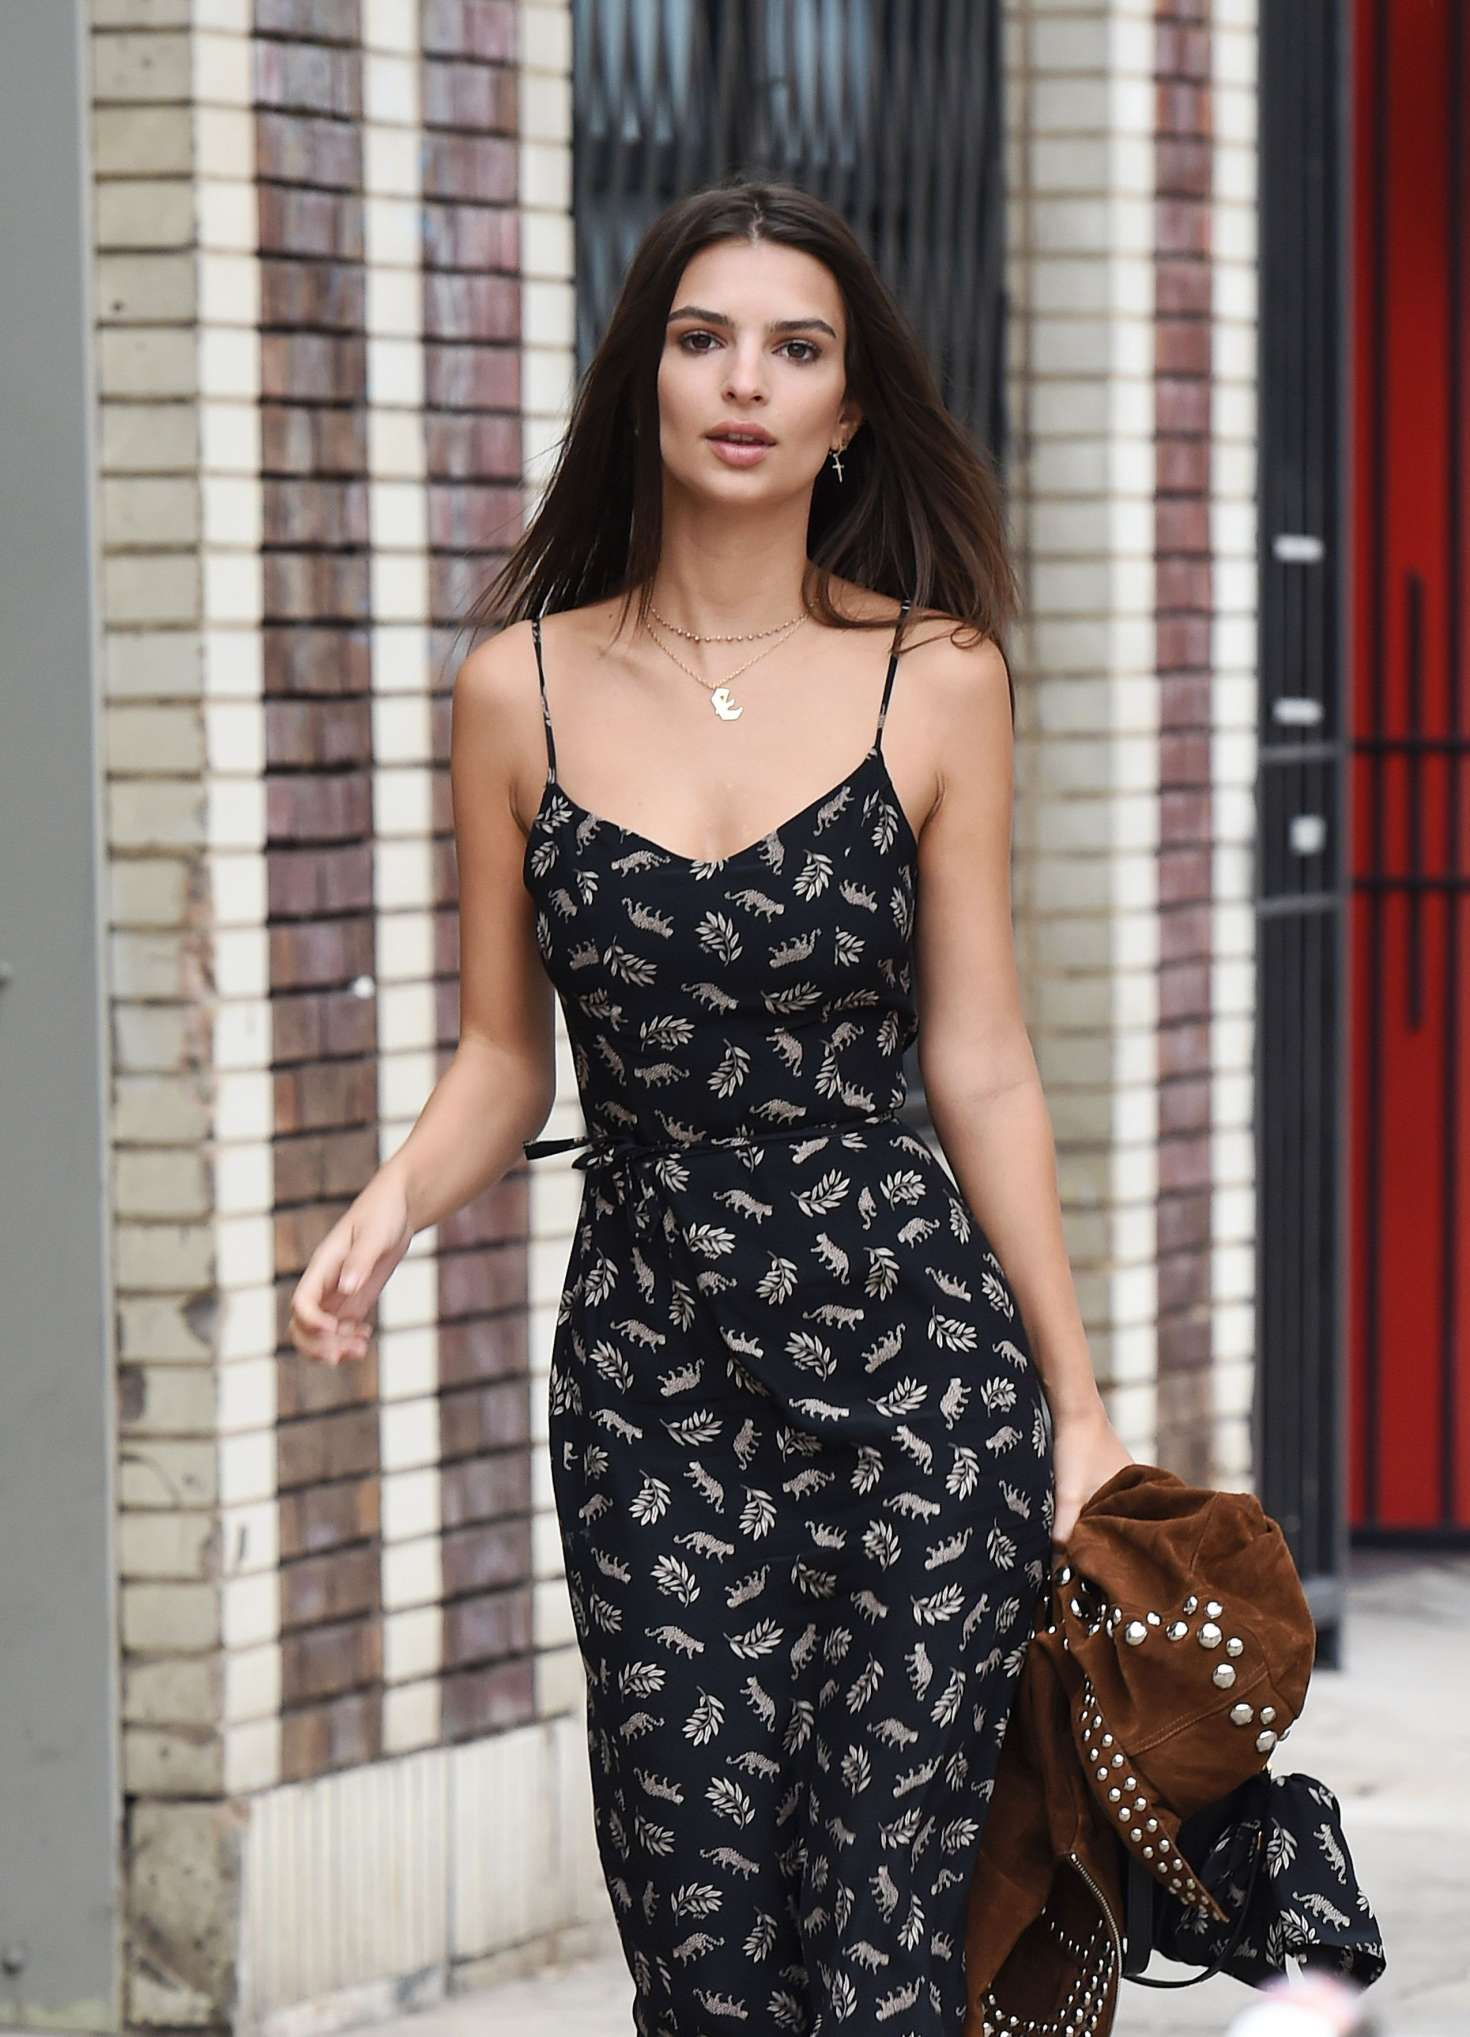 Emily Ratajkowski in Summer Dress out in Los Angeles